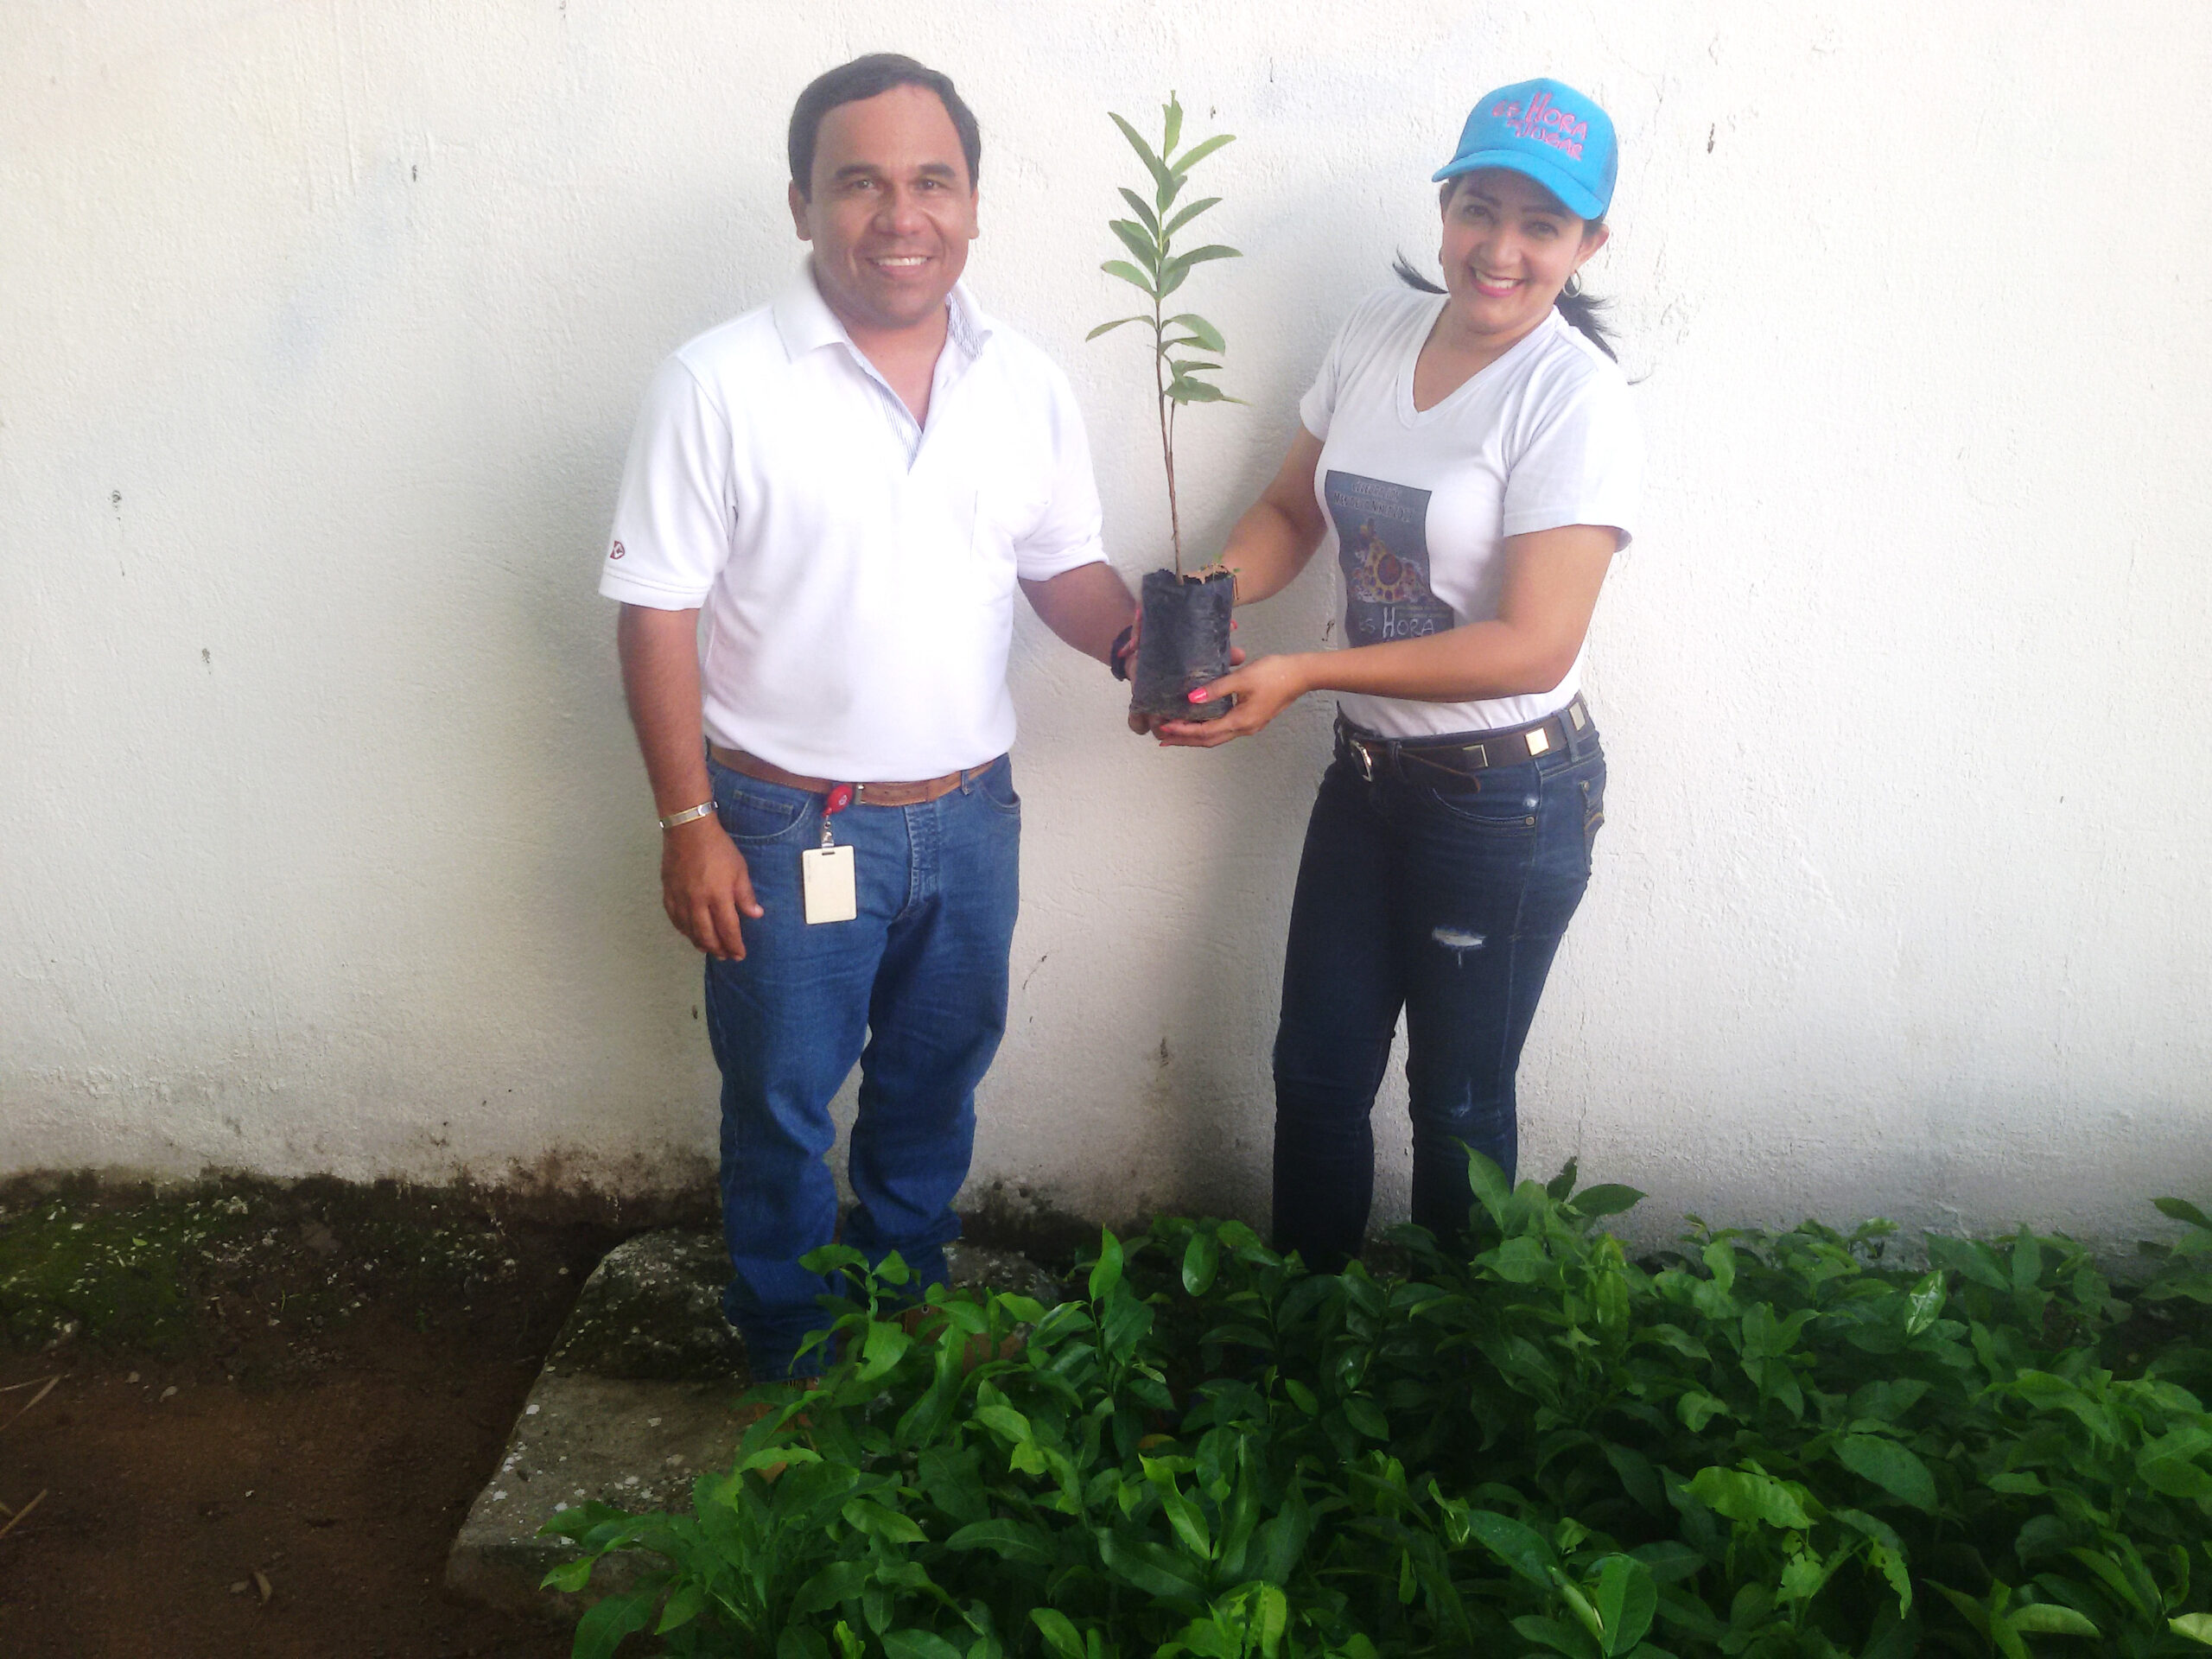 *In the photograph: Leonardo Armenta, Drummond Ltd.'s Community Relations Assistant, and Erica Trujillo, Social Programs Coordinator for the municipality of La Jagua de Ibirico